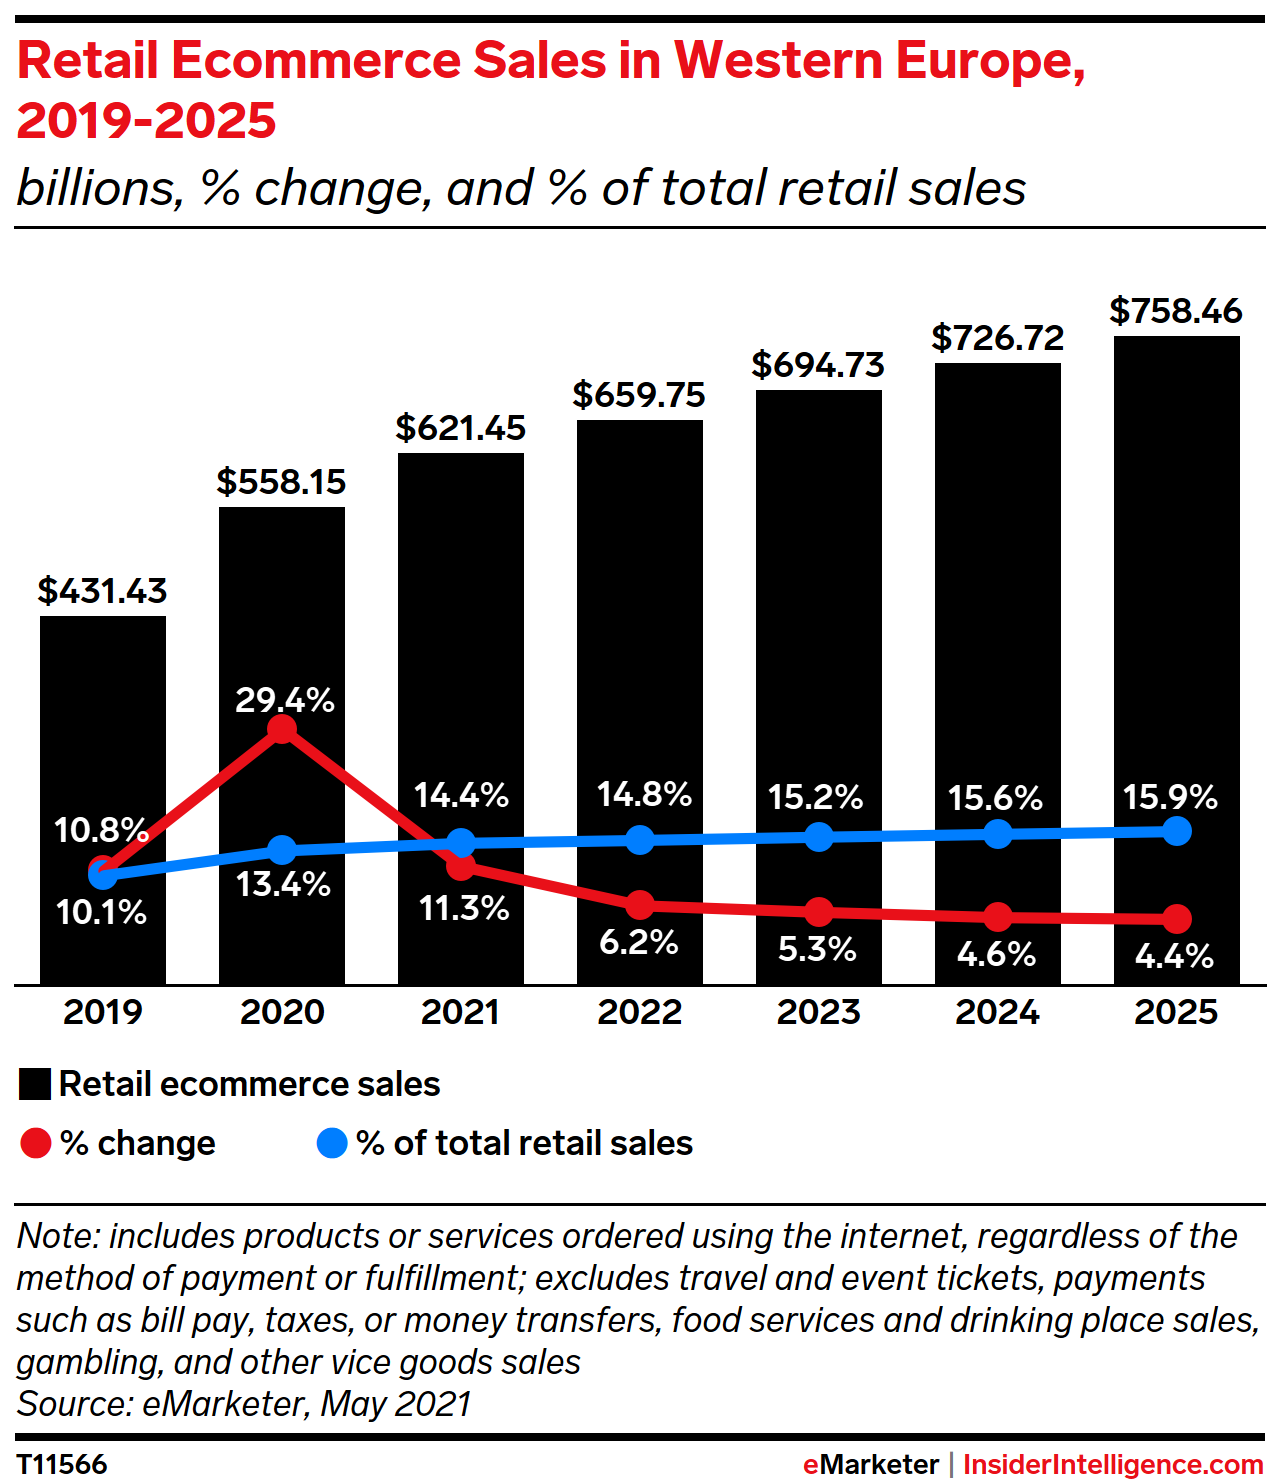 Retail Ecommerce Sales in Western Europe, 2019-2025 (billions, % change, and % of total retail sales)